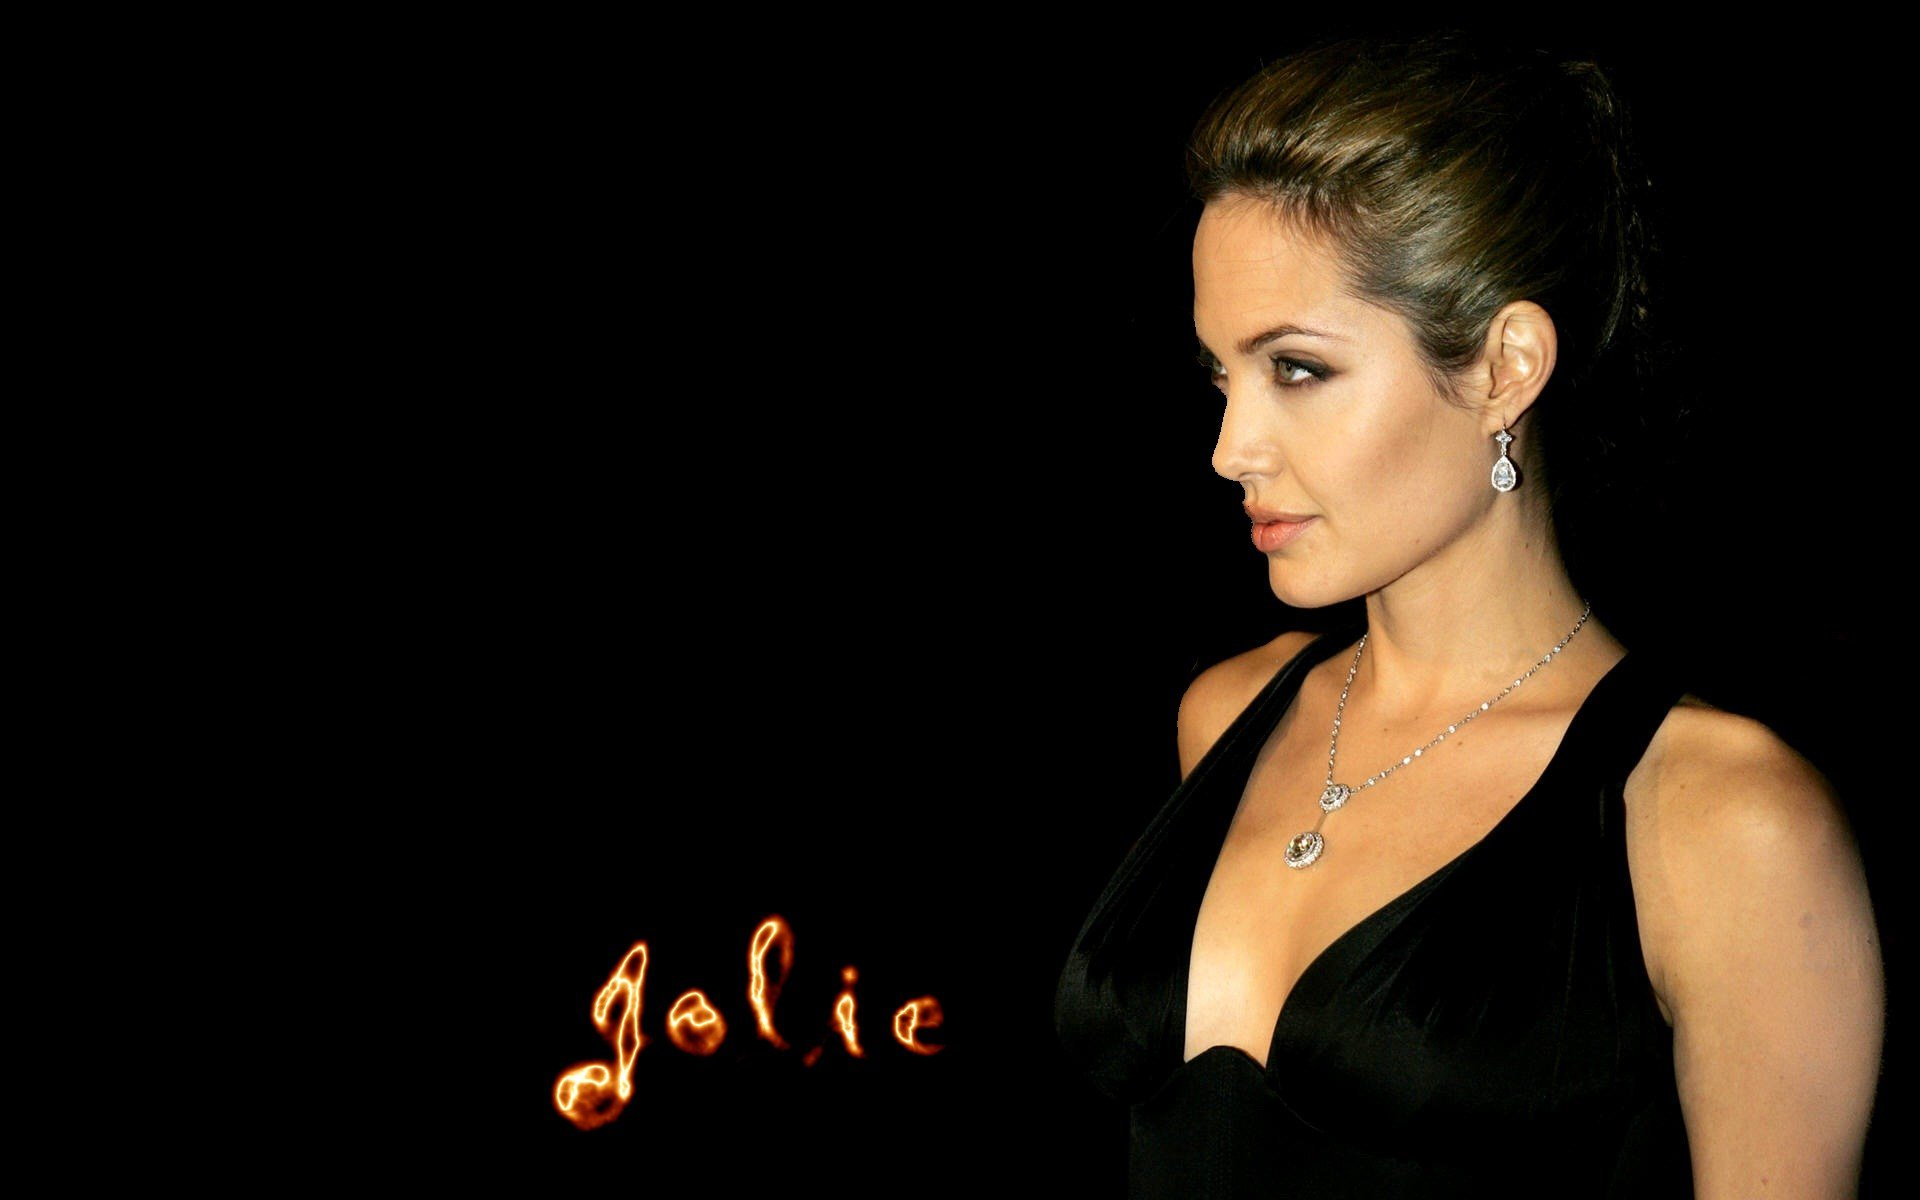 ... Angelina-Jolie-hd-images-4 ...